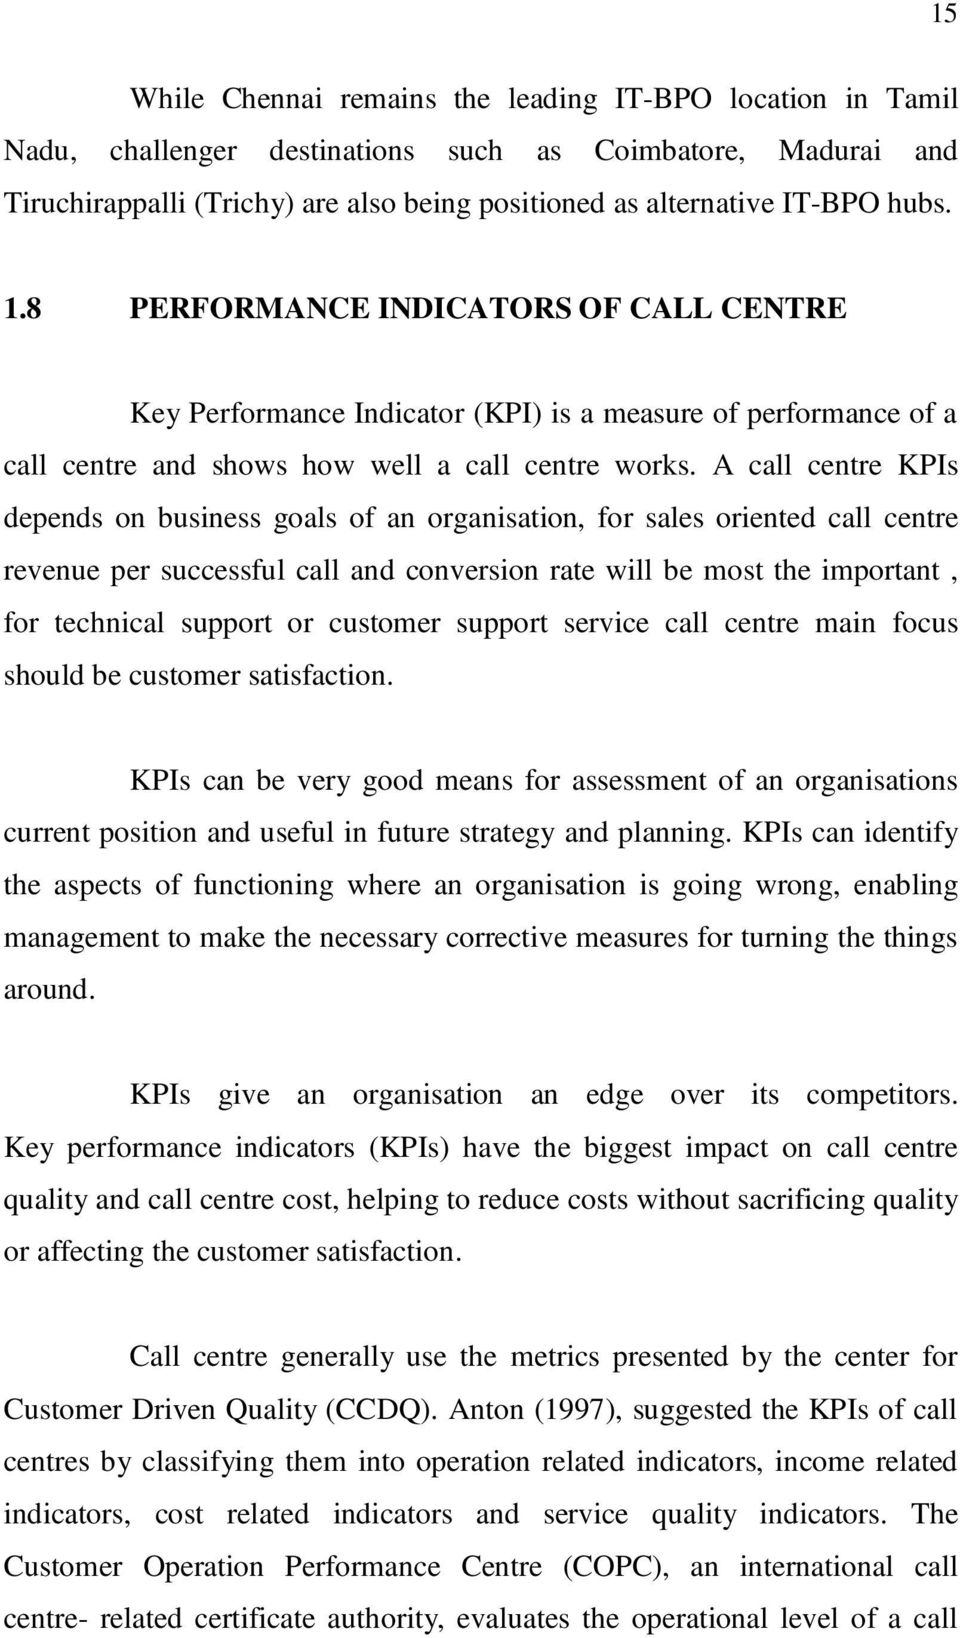 A call centre KPIs depends on business goals of an organisation, for sales oriented call centre revenue per successful call and conversion rate will be most the important, for technical support or